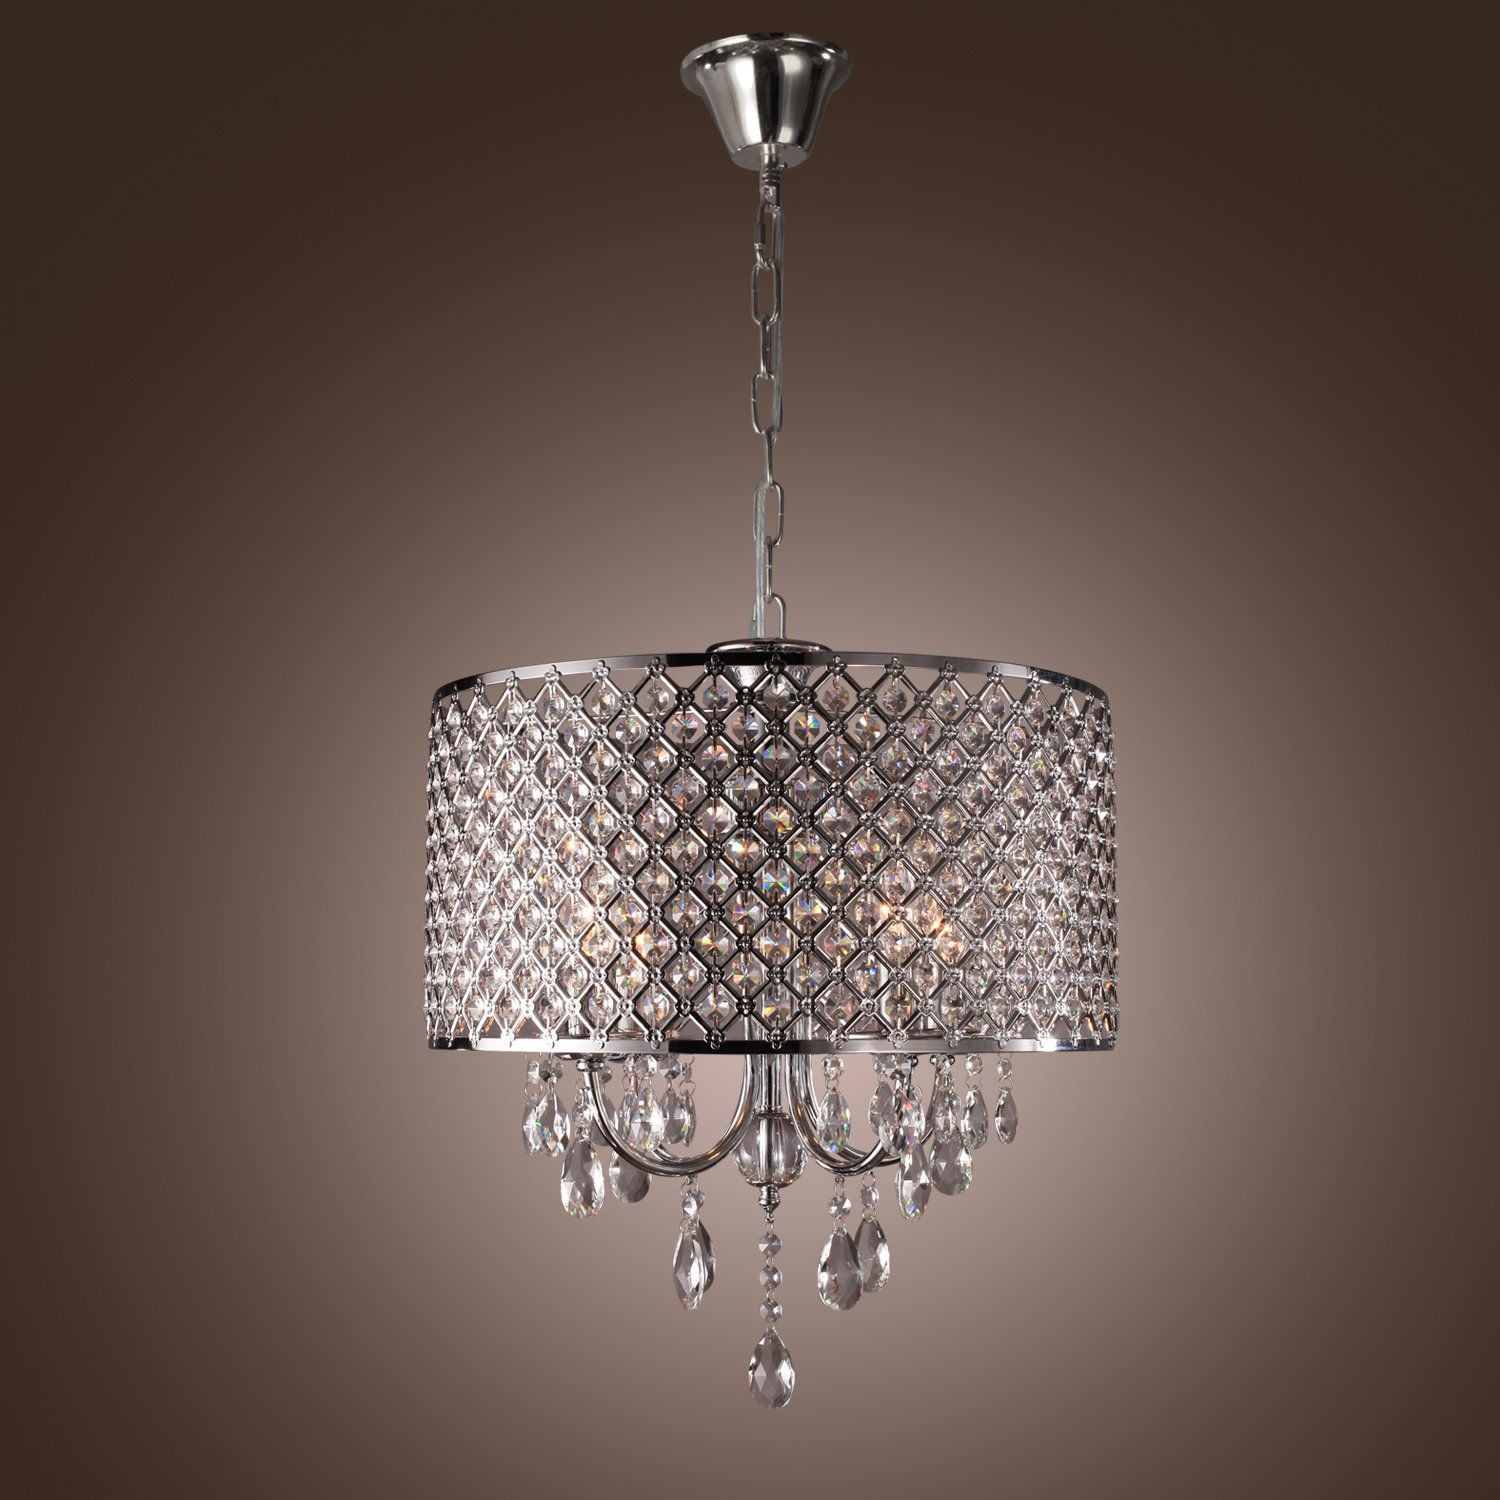 Y L C2 Ae60w Traditional Crystal Chrome Metal Chandeliers Flush Mount Pendant Light Fixture For L Chandelier In Living Room Metal Chandelier Metal Living Room